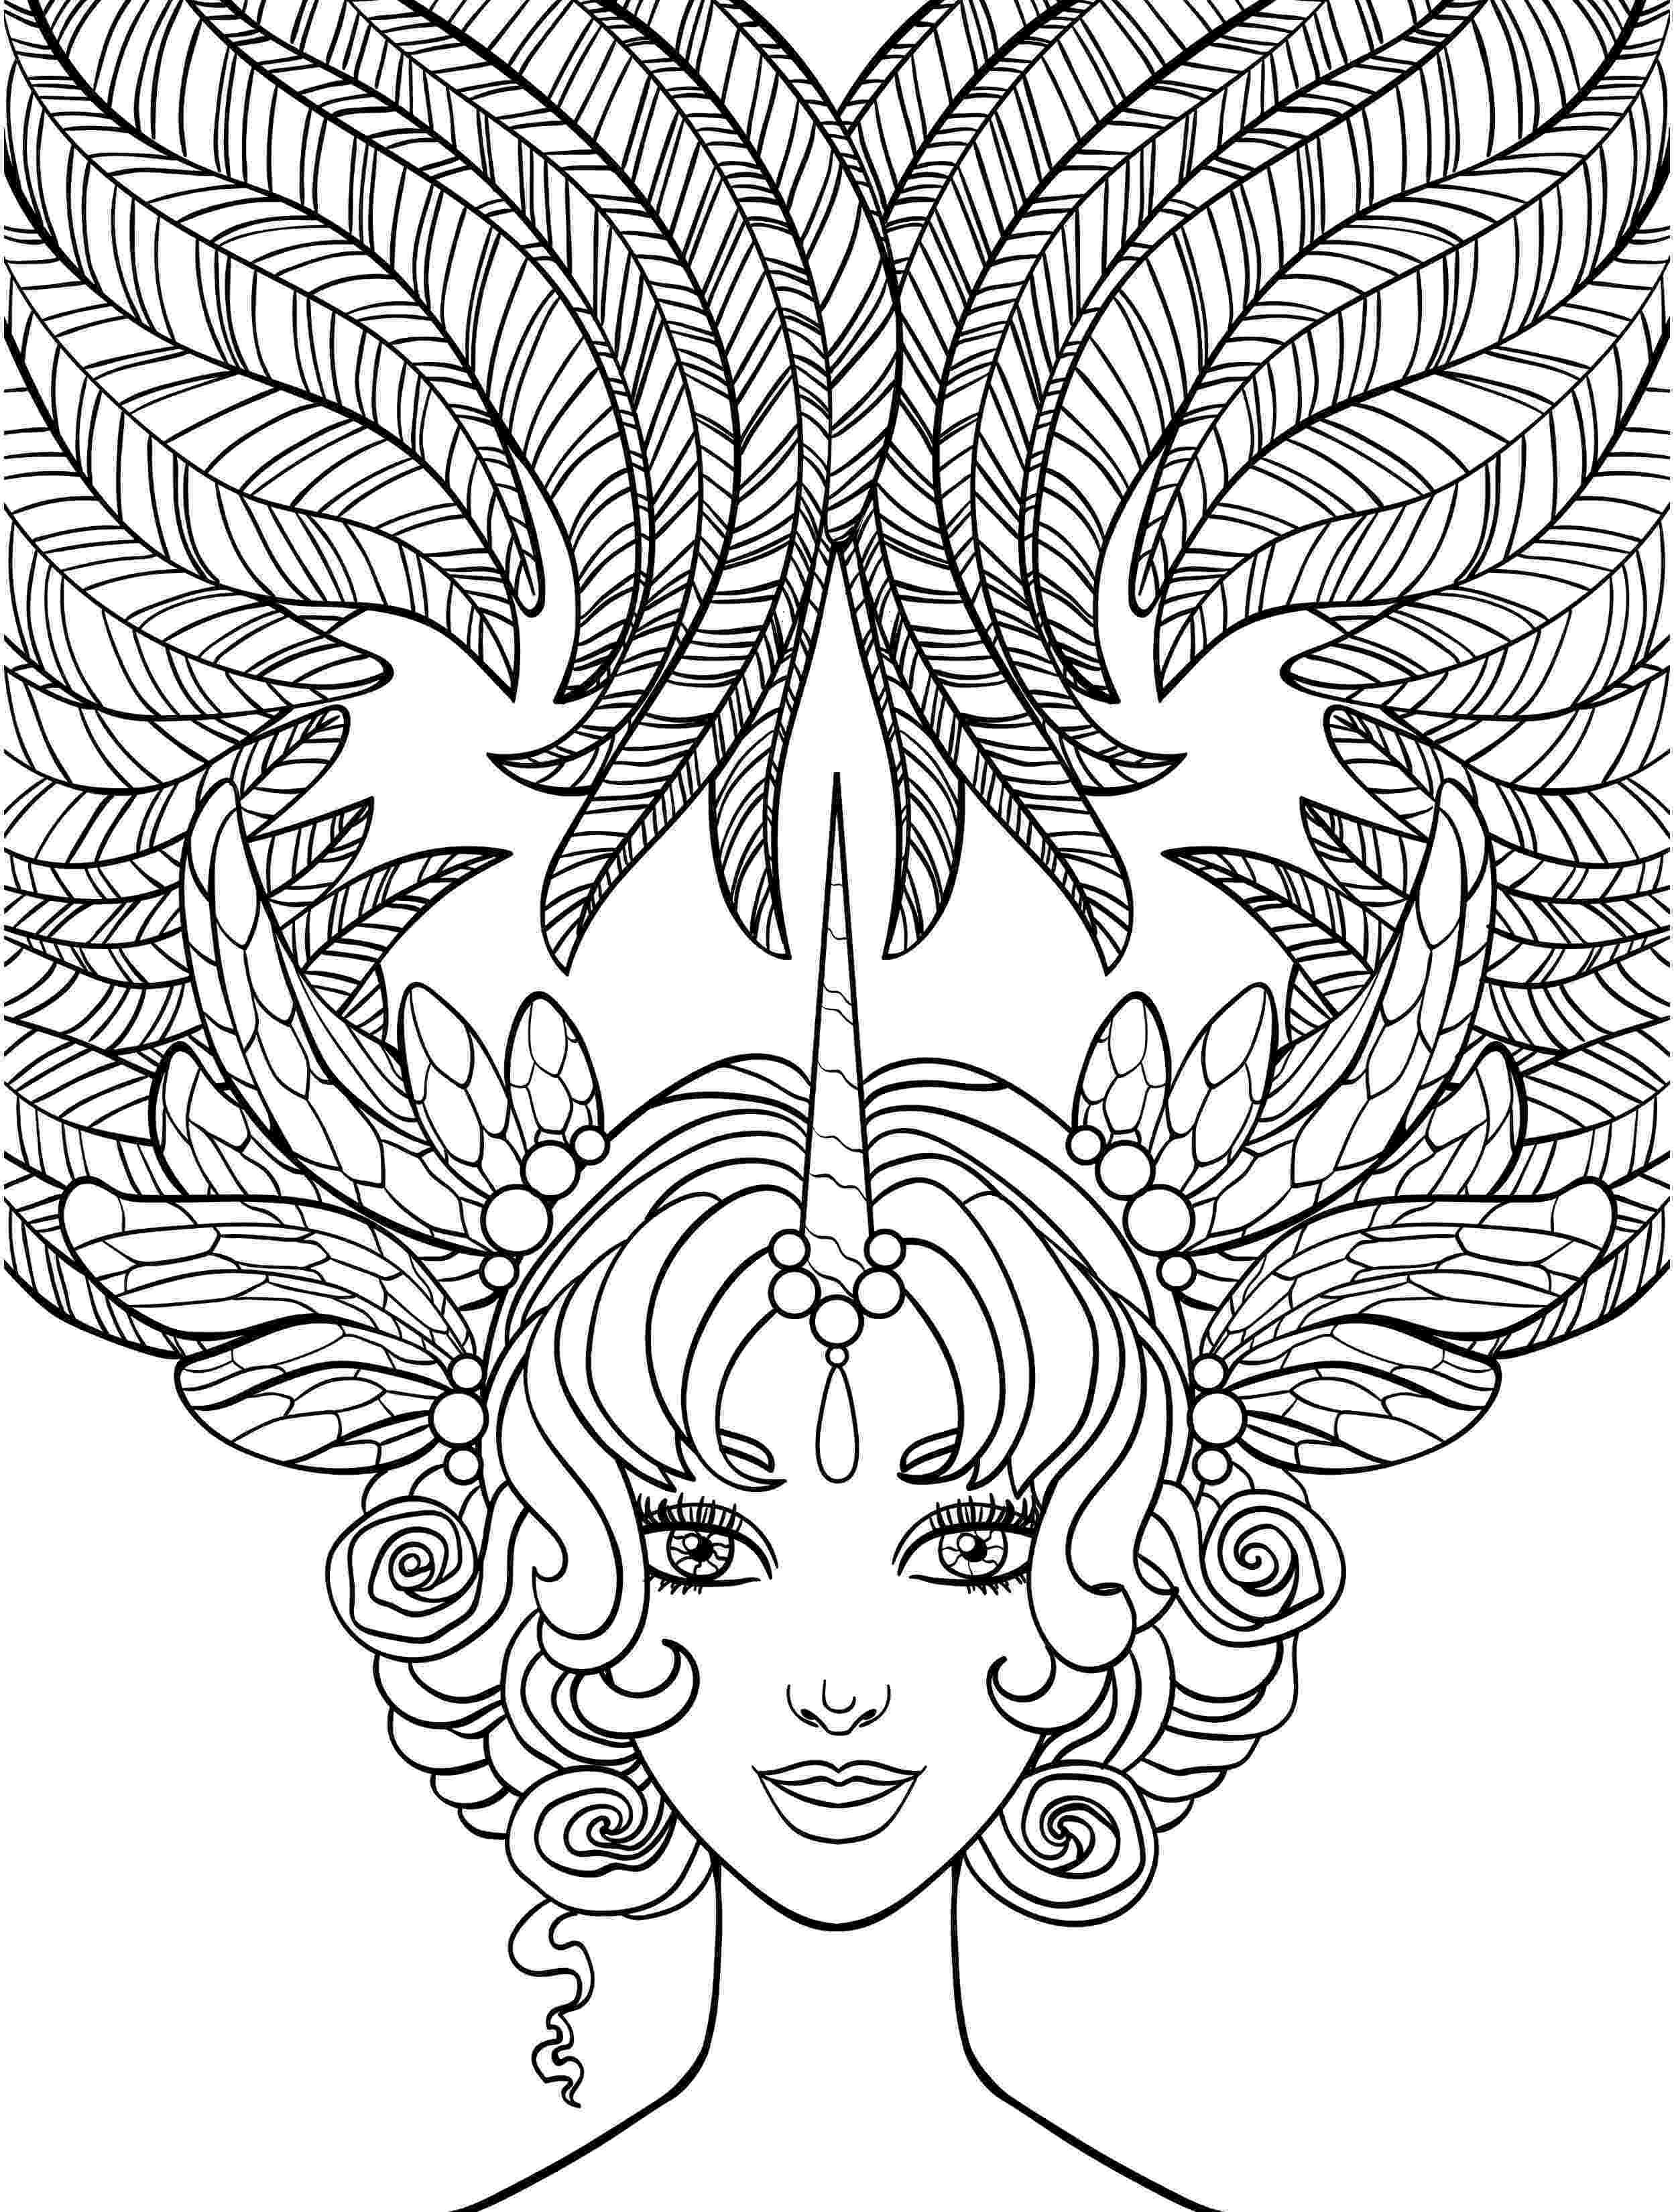 hair coloring pages aeromachia girl flower hair coloring pages pages coloring hair